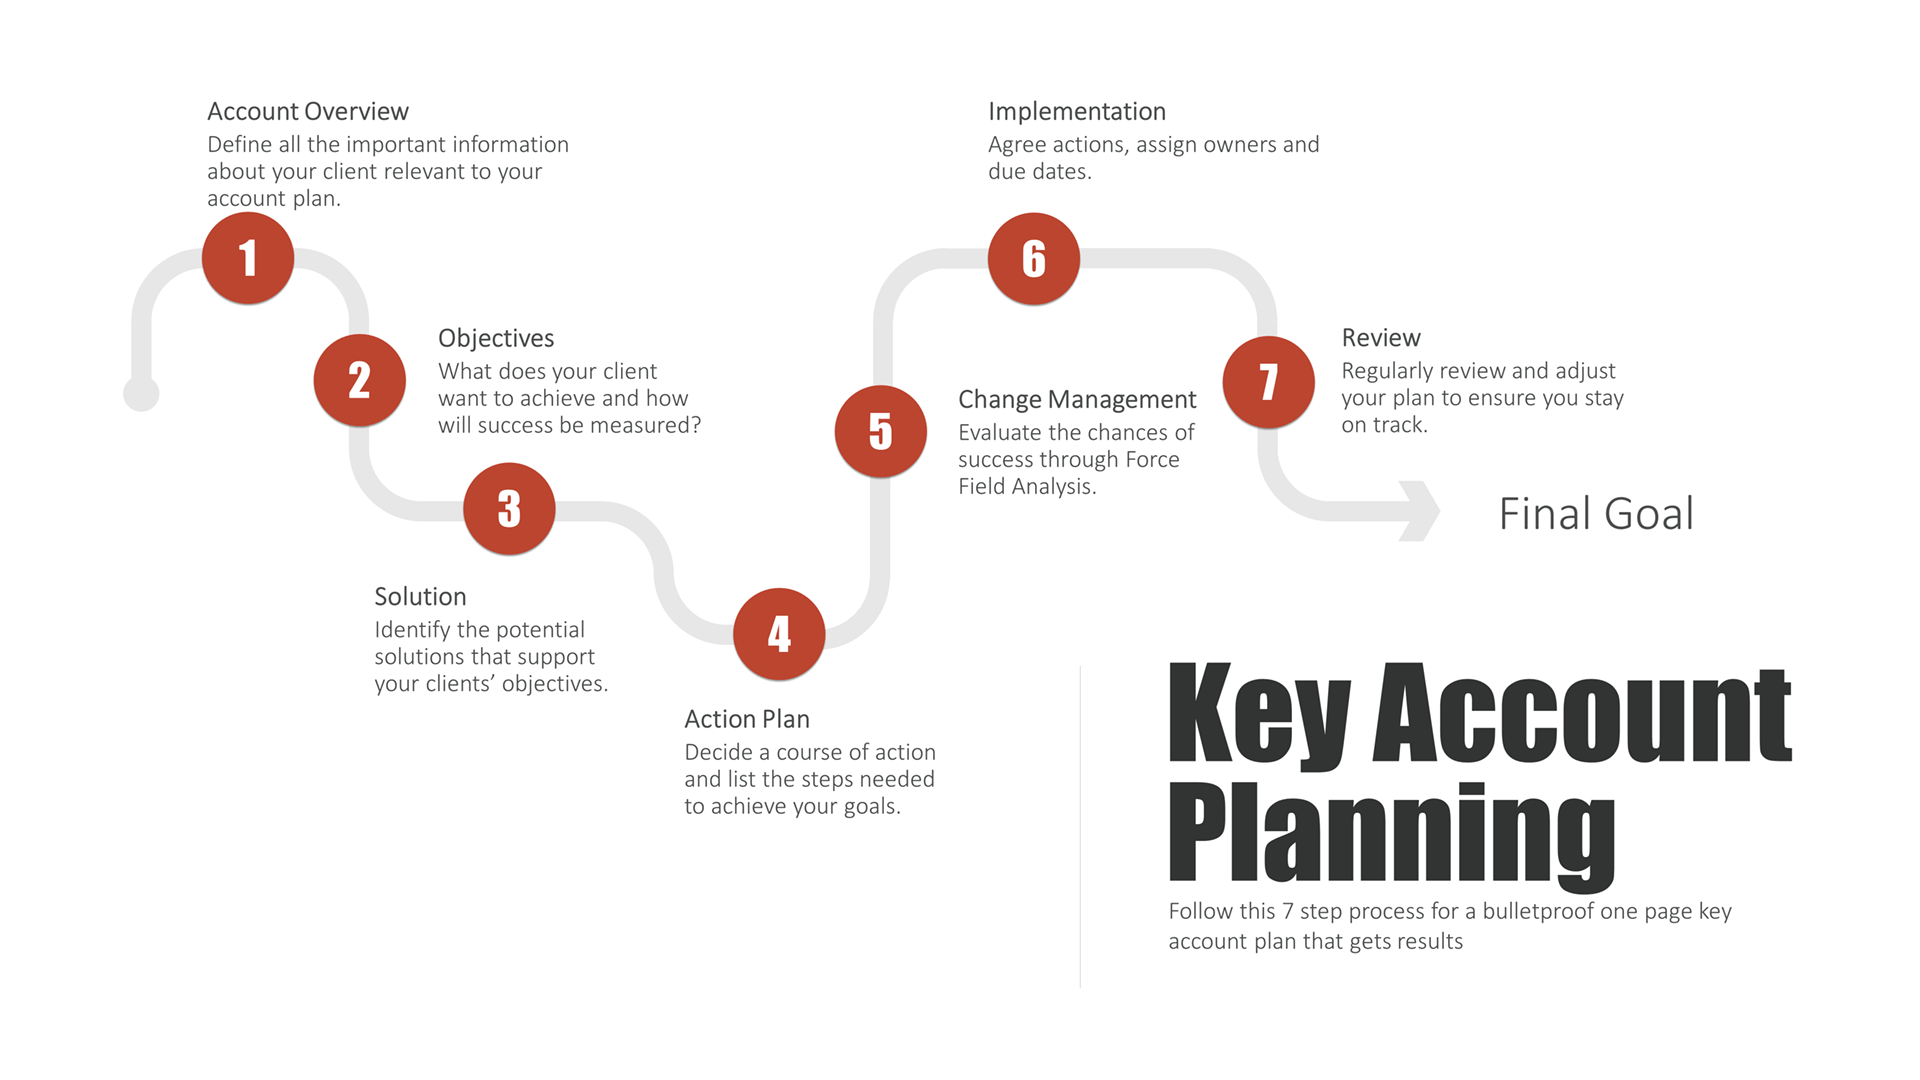 Key account plans are easyunt planning is easy with this 7 step key account planning process.